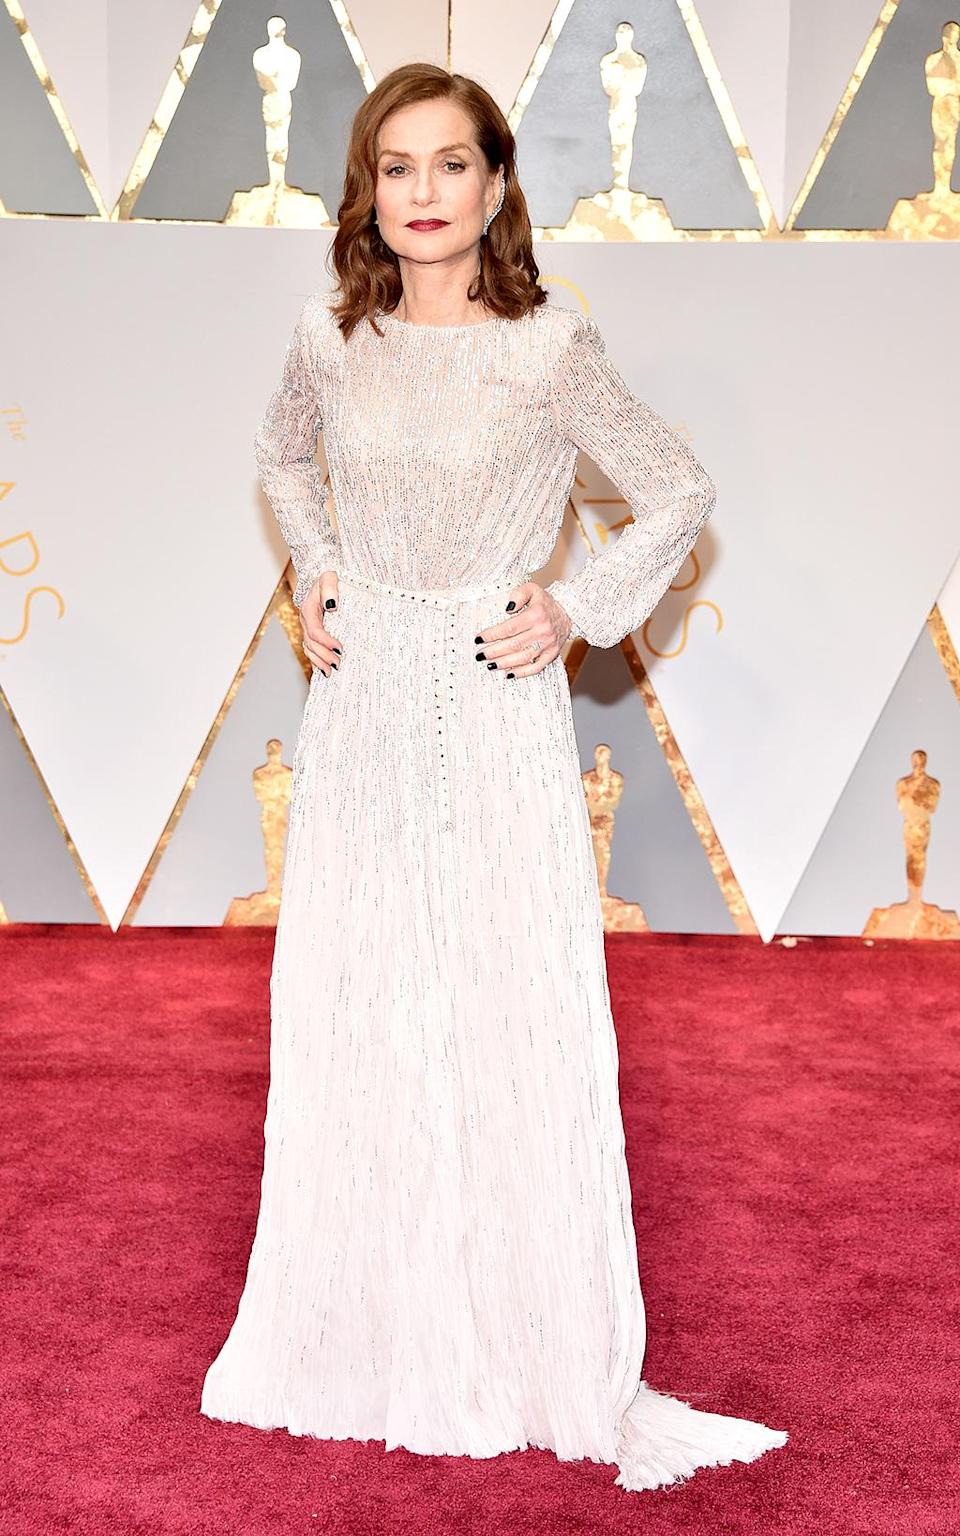 <p>Actress Isabelle Huppert attends the 89th Annual Academy Awards at Hollywood & Highland Center on February 26, 2017 in Hollywood, California. (Photo by Kevin Mazur/Getty Images) </p>